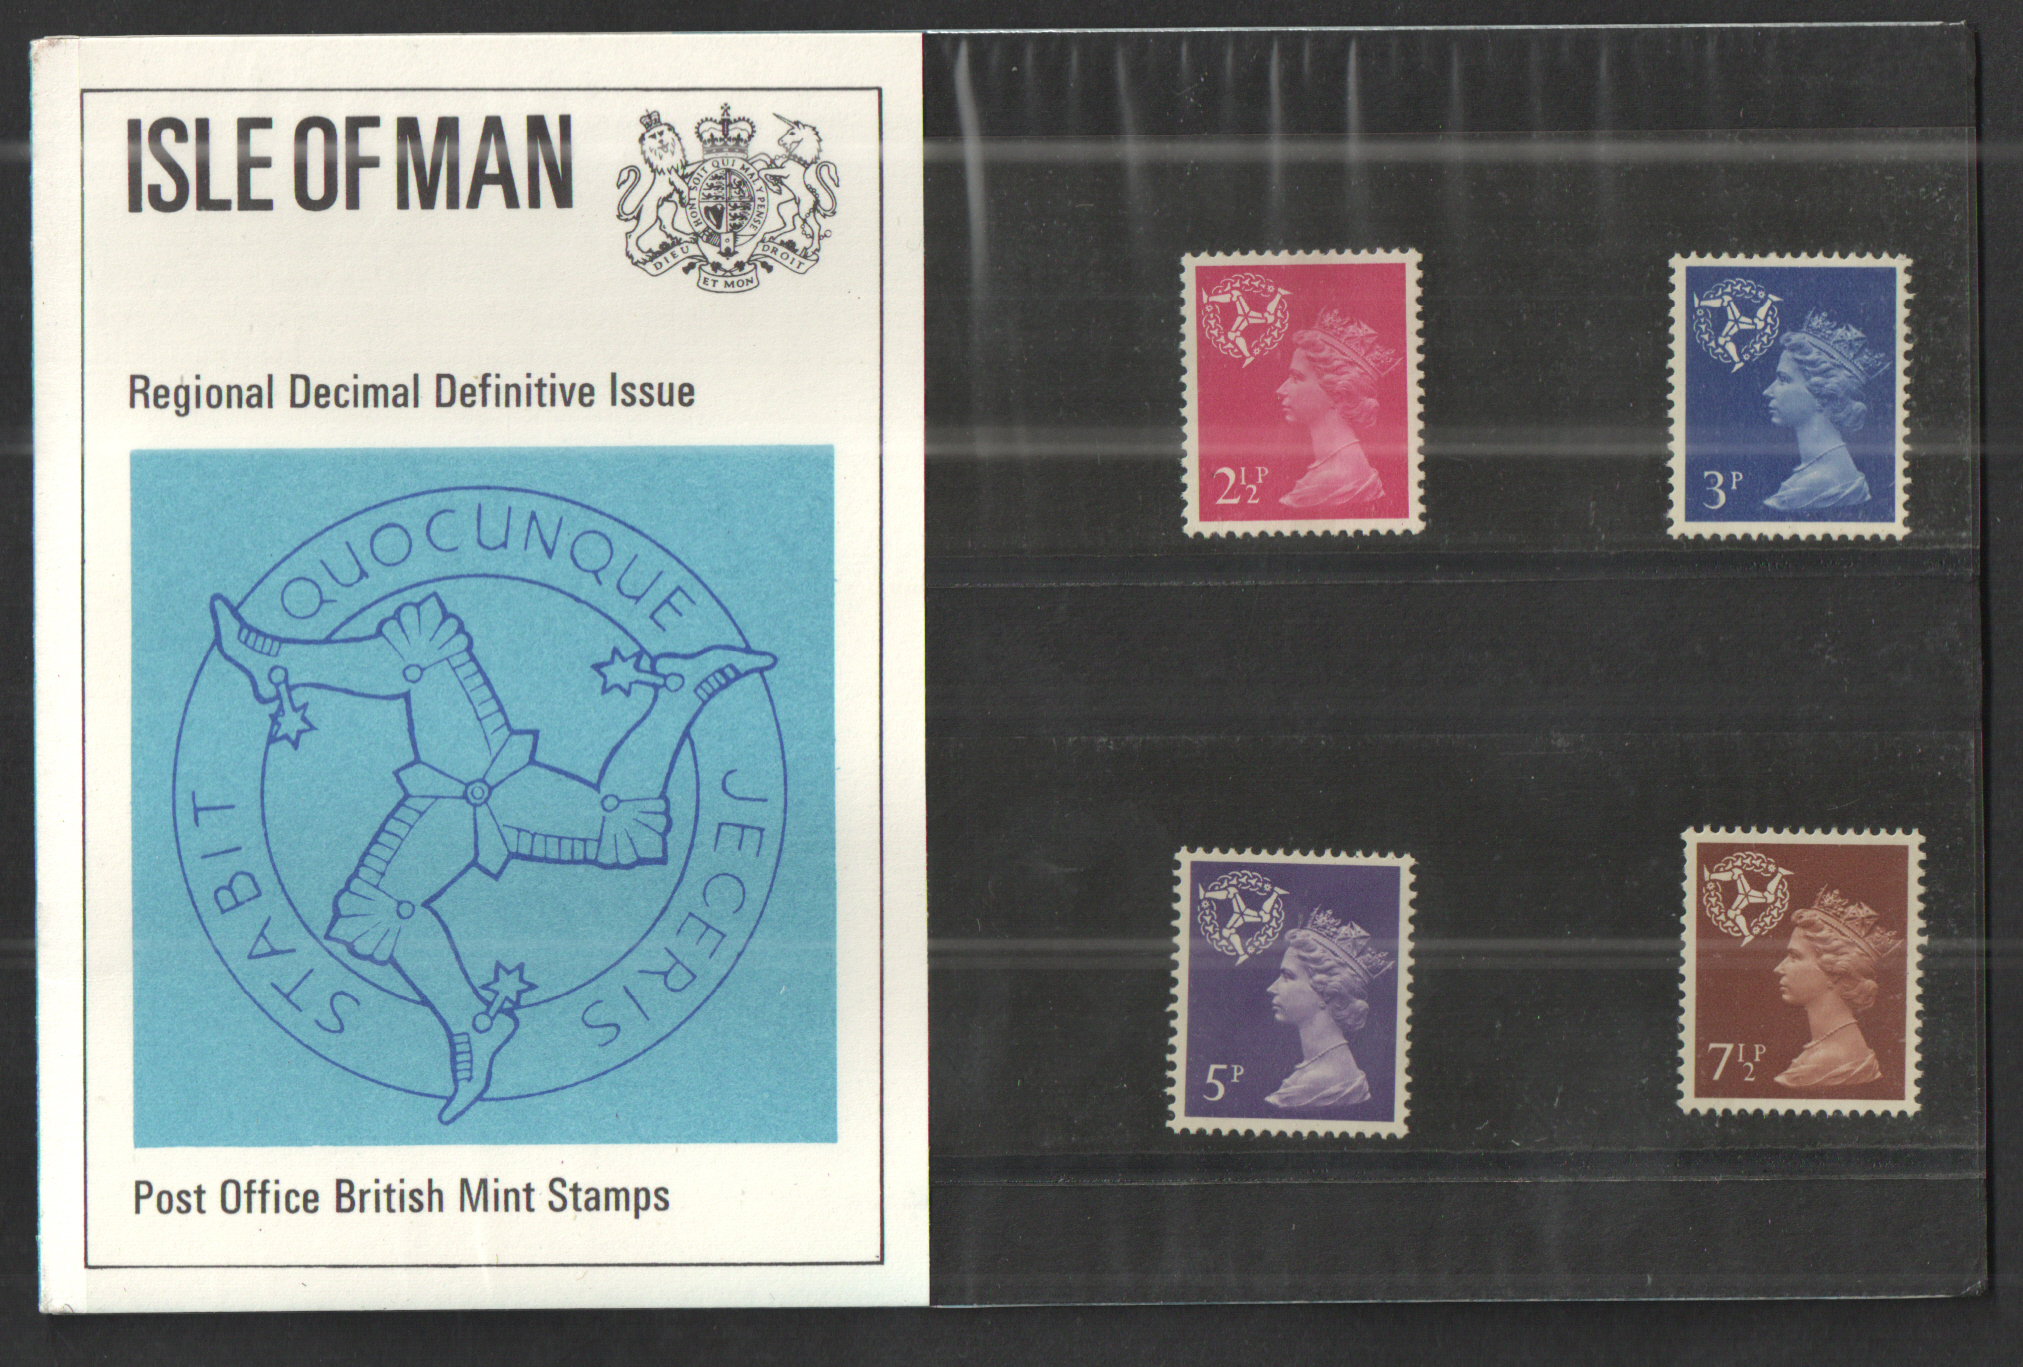 1971 Isle of Man Definitive Royal Mail Presentation Pack 30